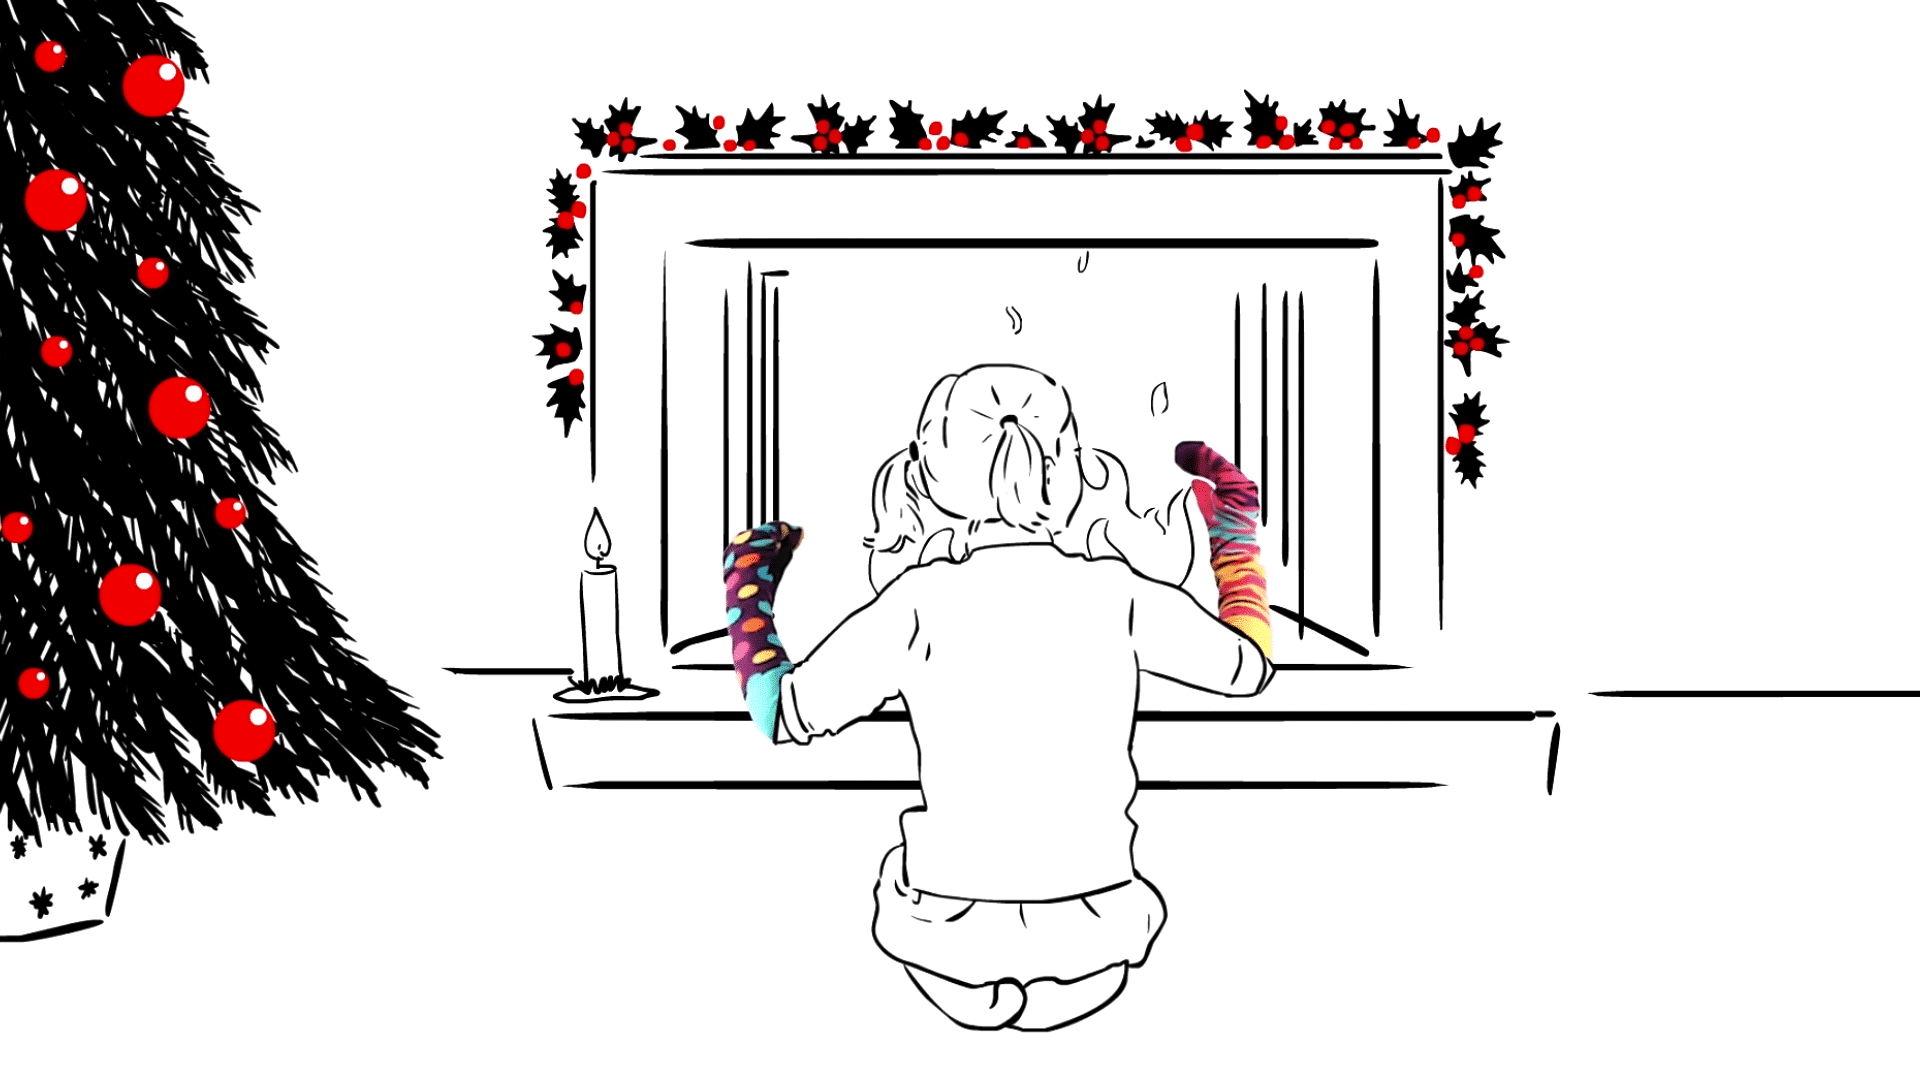 character animation social media video - girl with sock puppets in front of fire